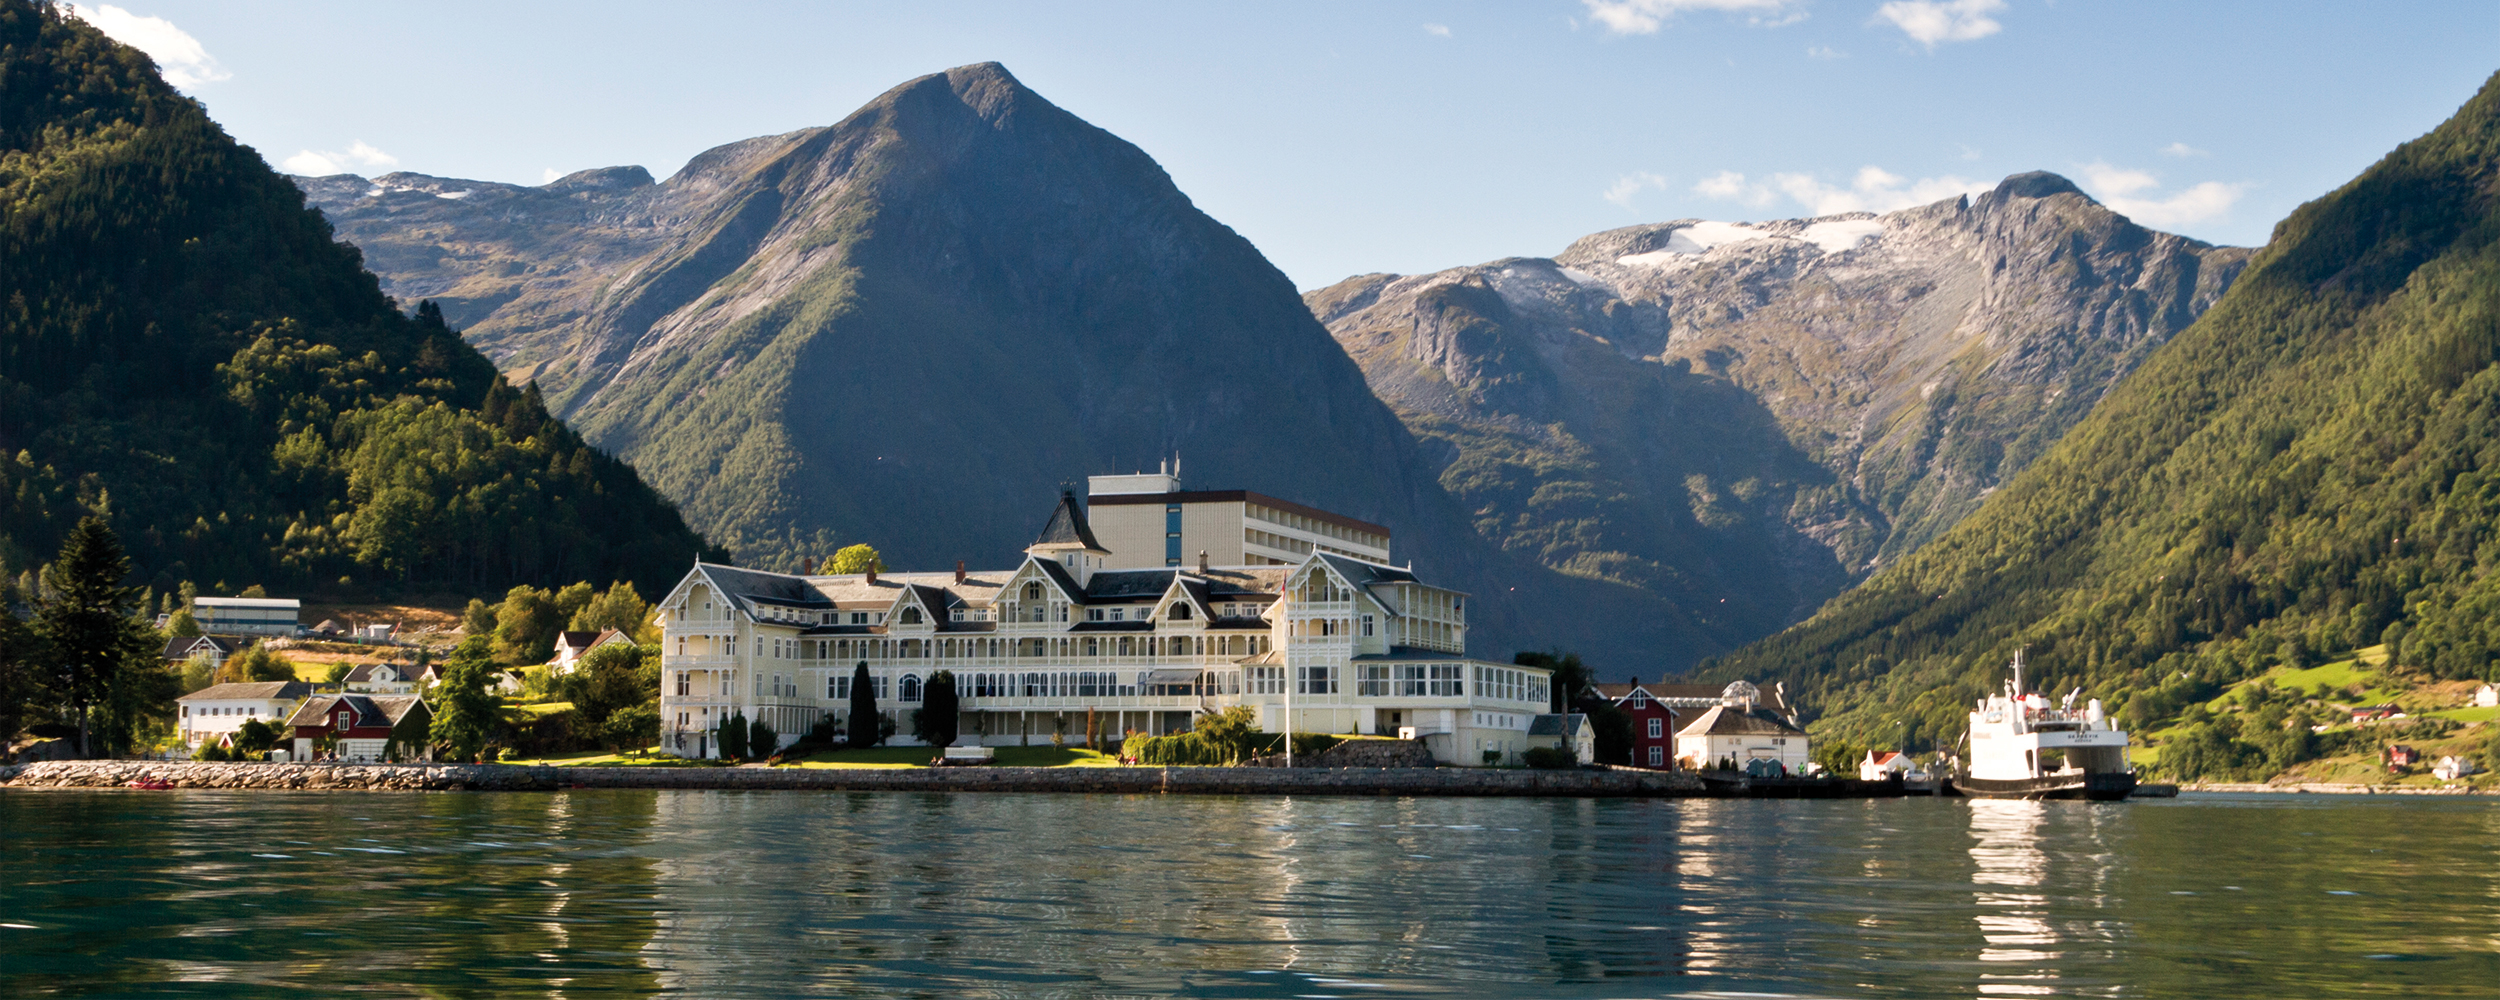 Extended season for the expressboat between Flåm and Bergen